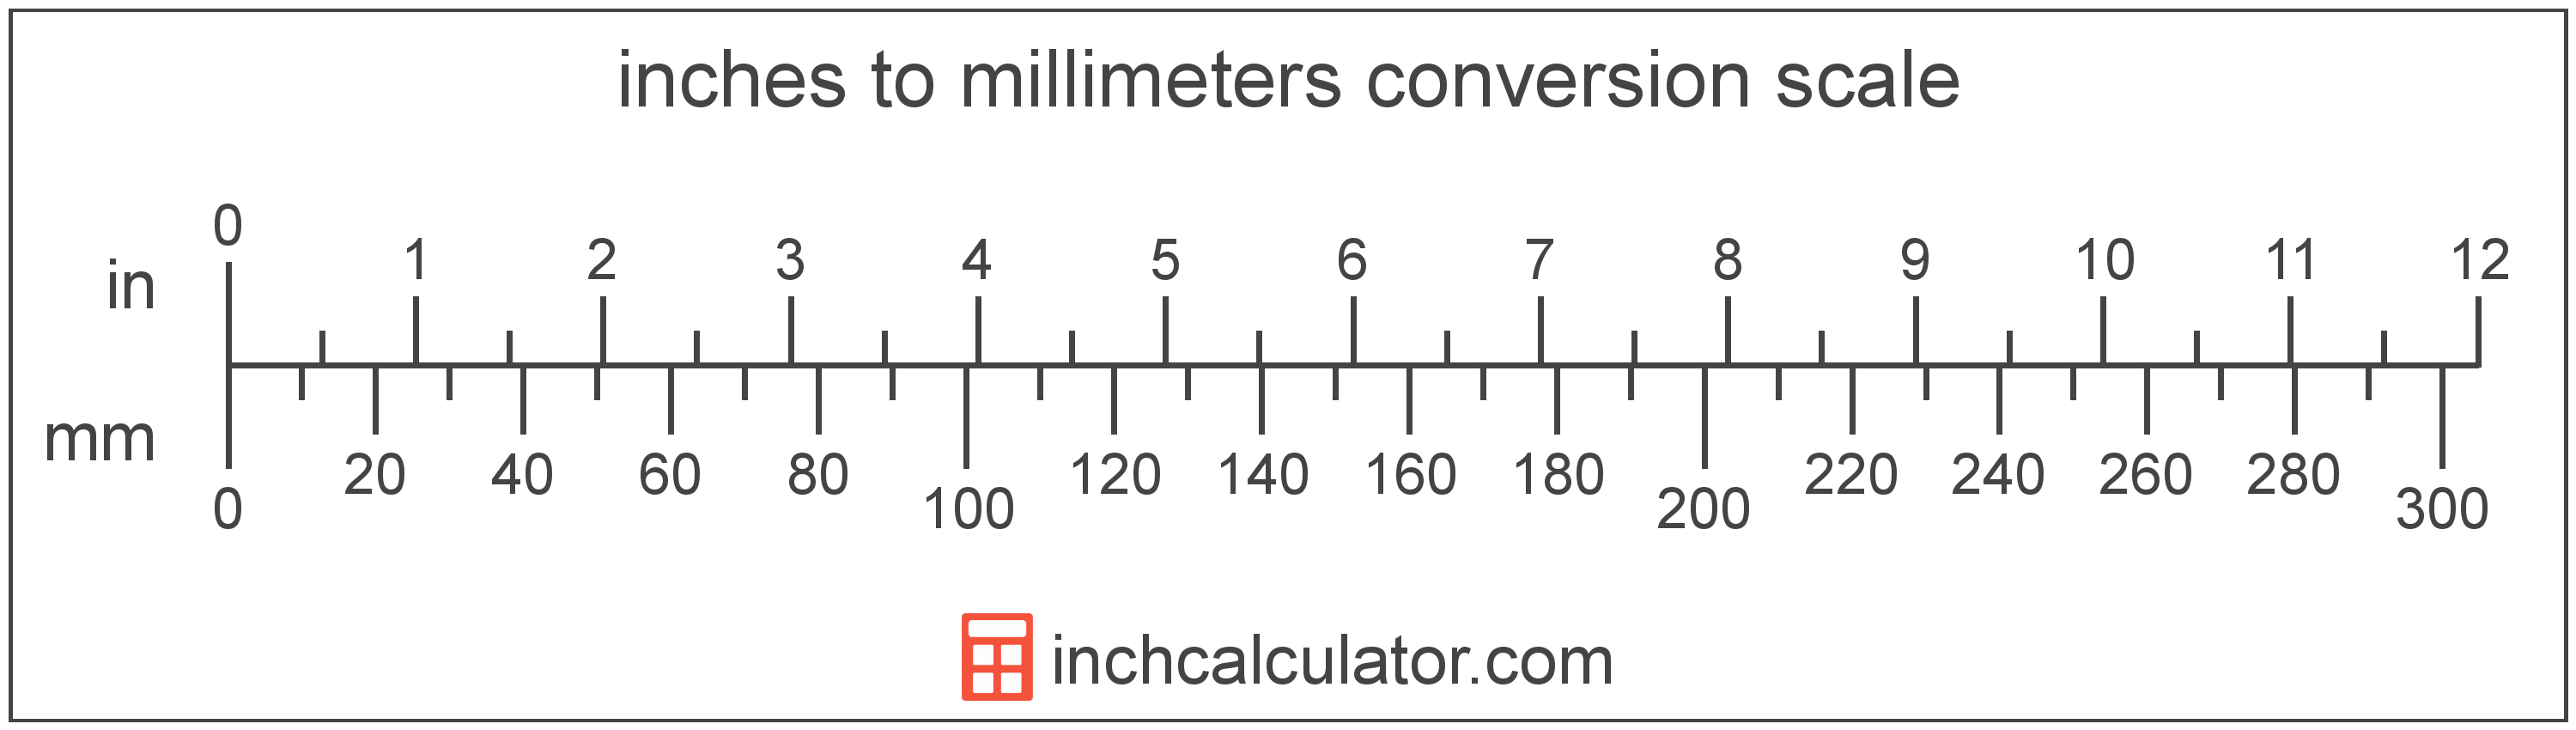 Inches unit of measurement conversion